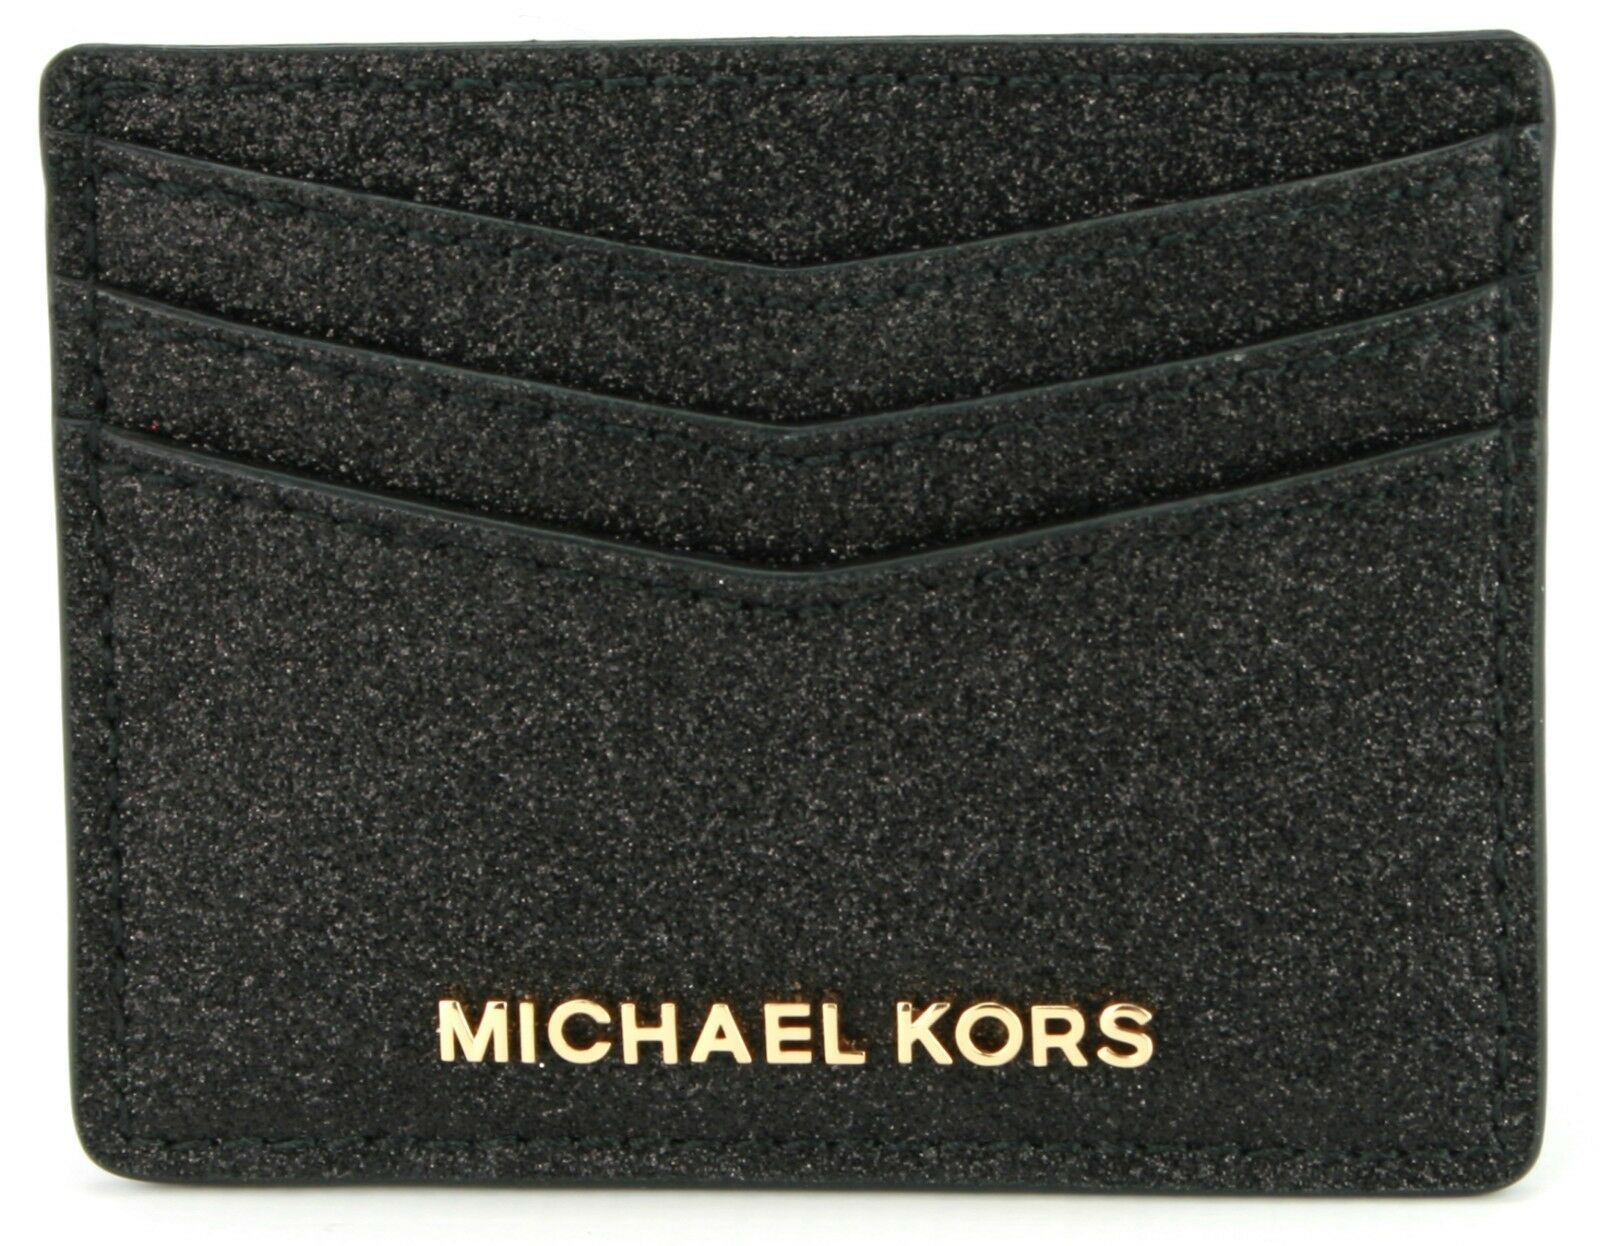 Primary image for Michael Kors Credit Card Holder Black Glitter with Gold Tone Hardware RRP £55